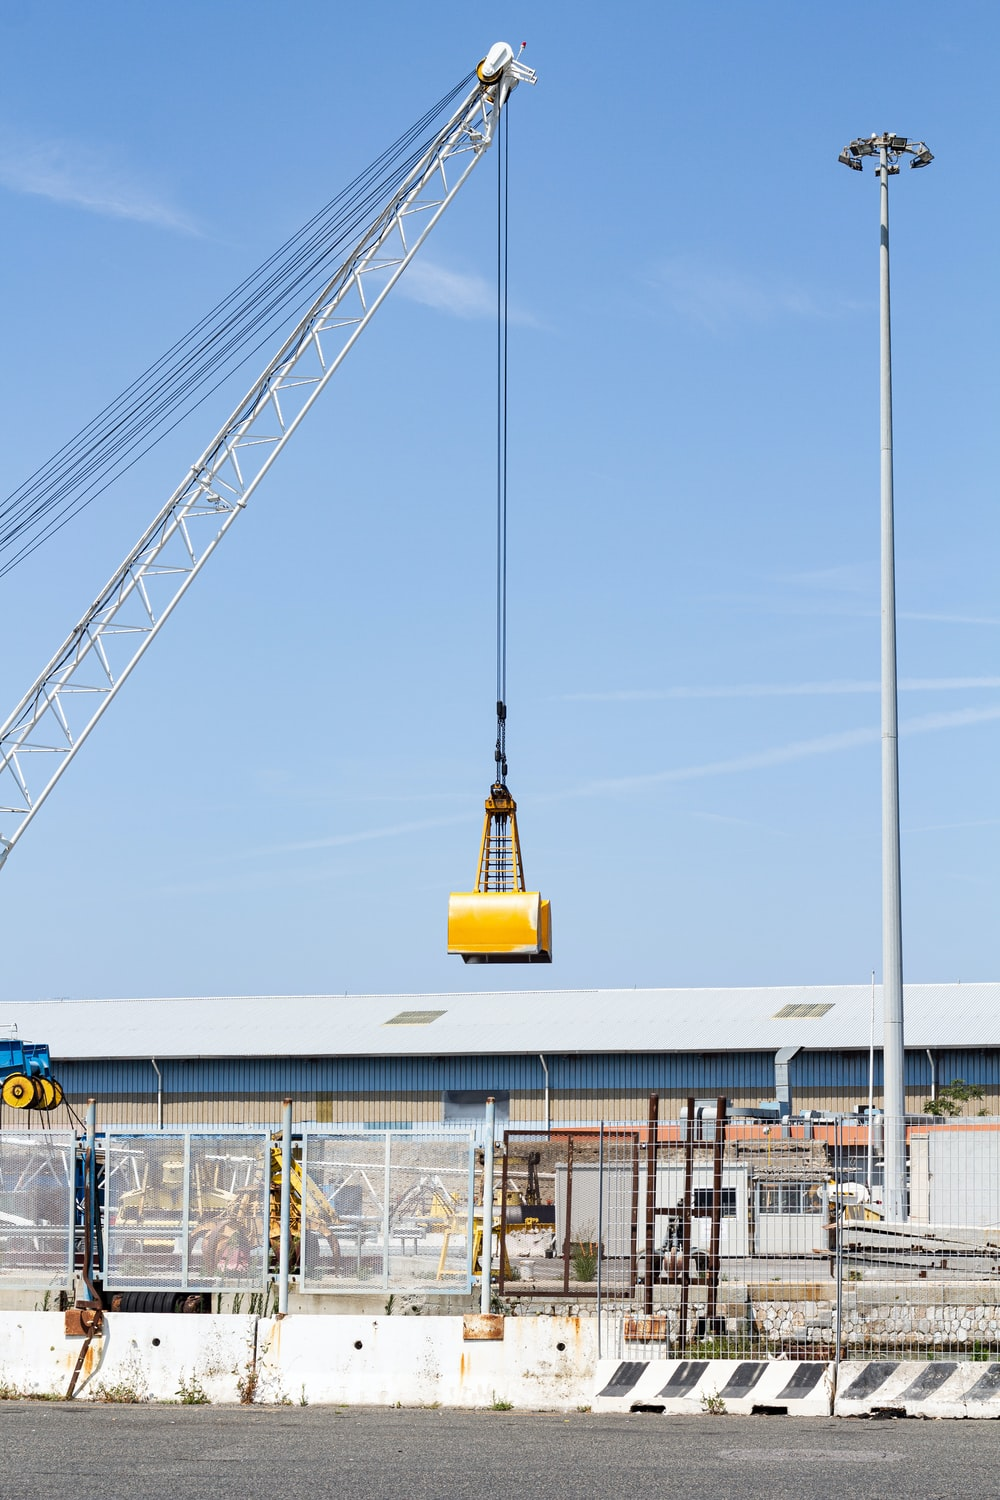 crane holding yellow box over building during daytime